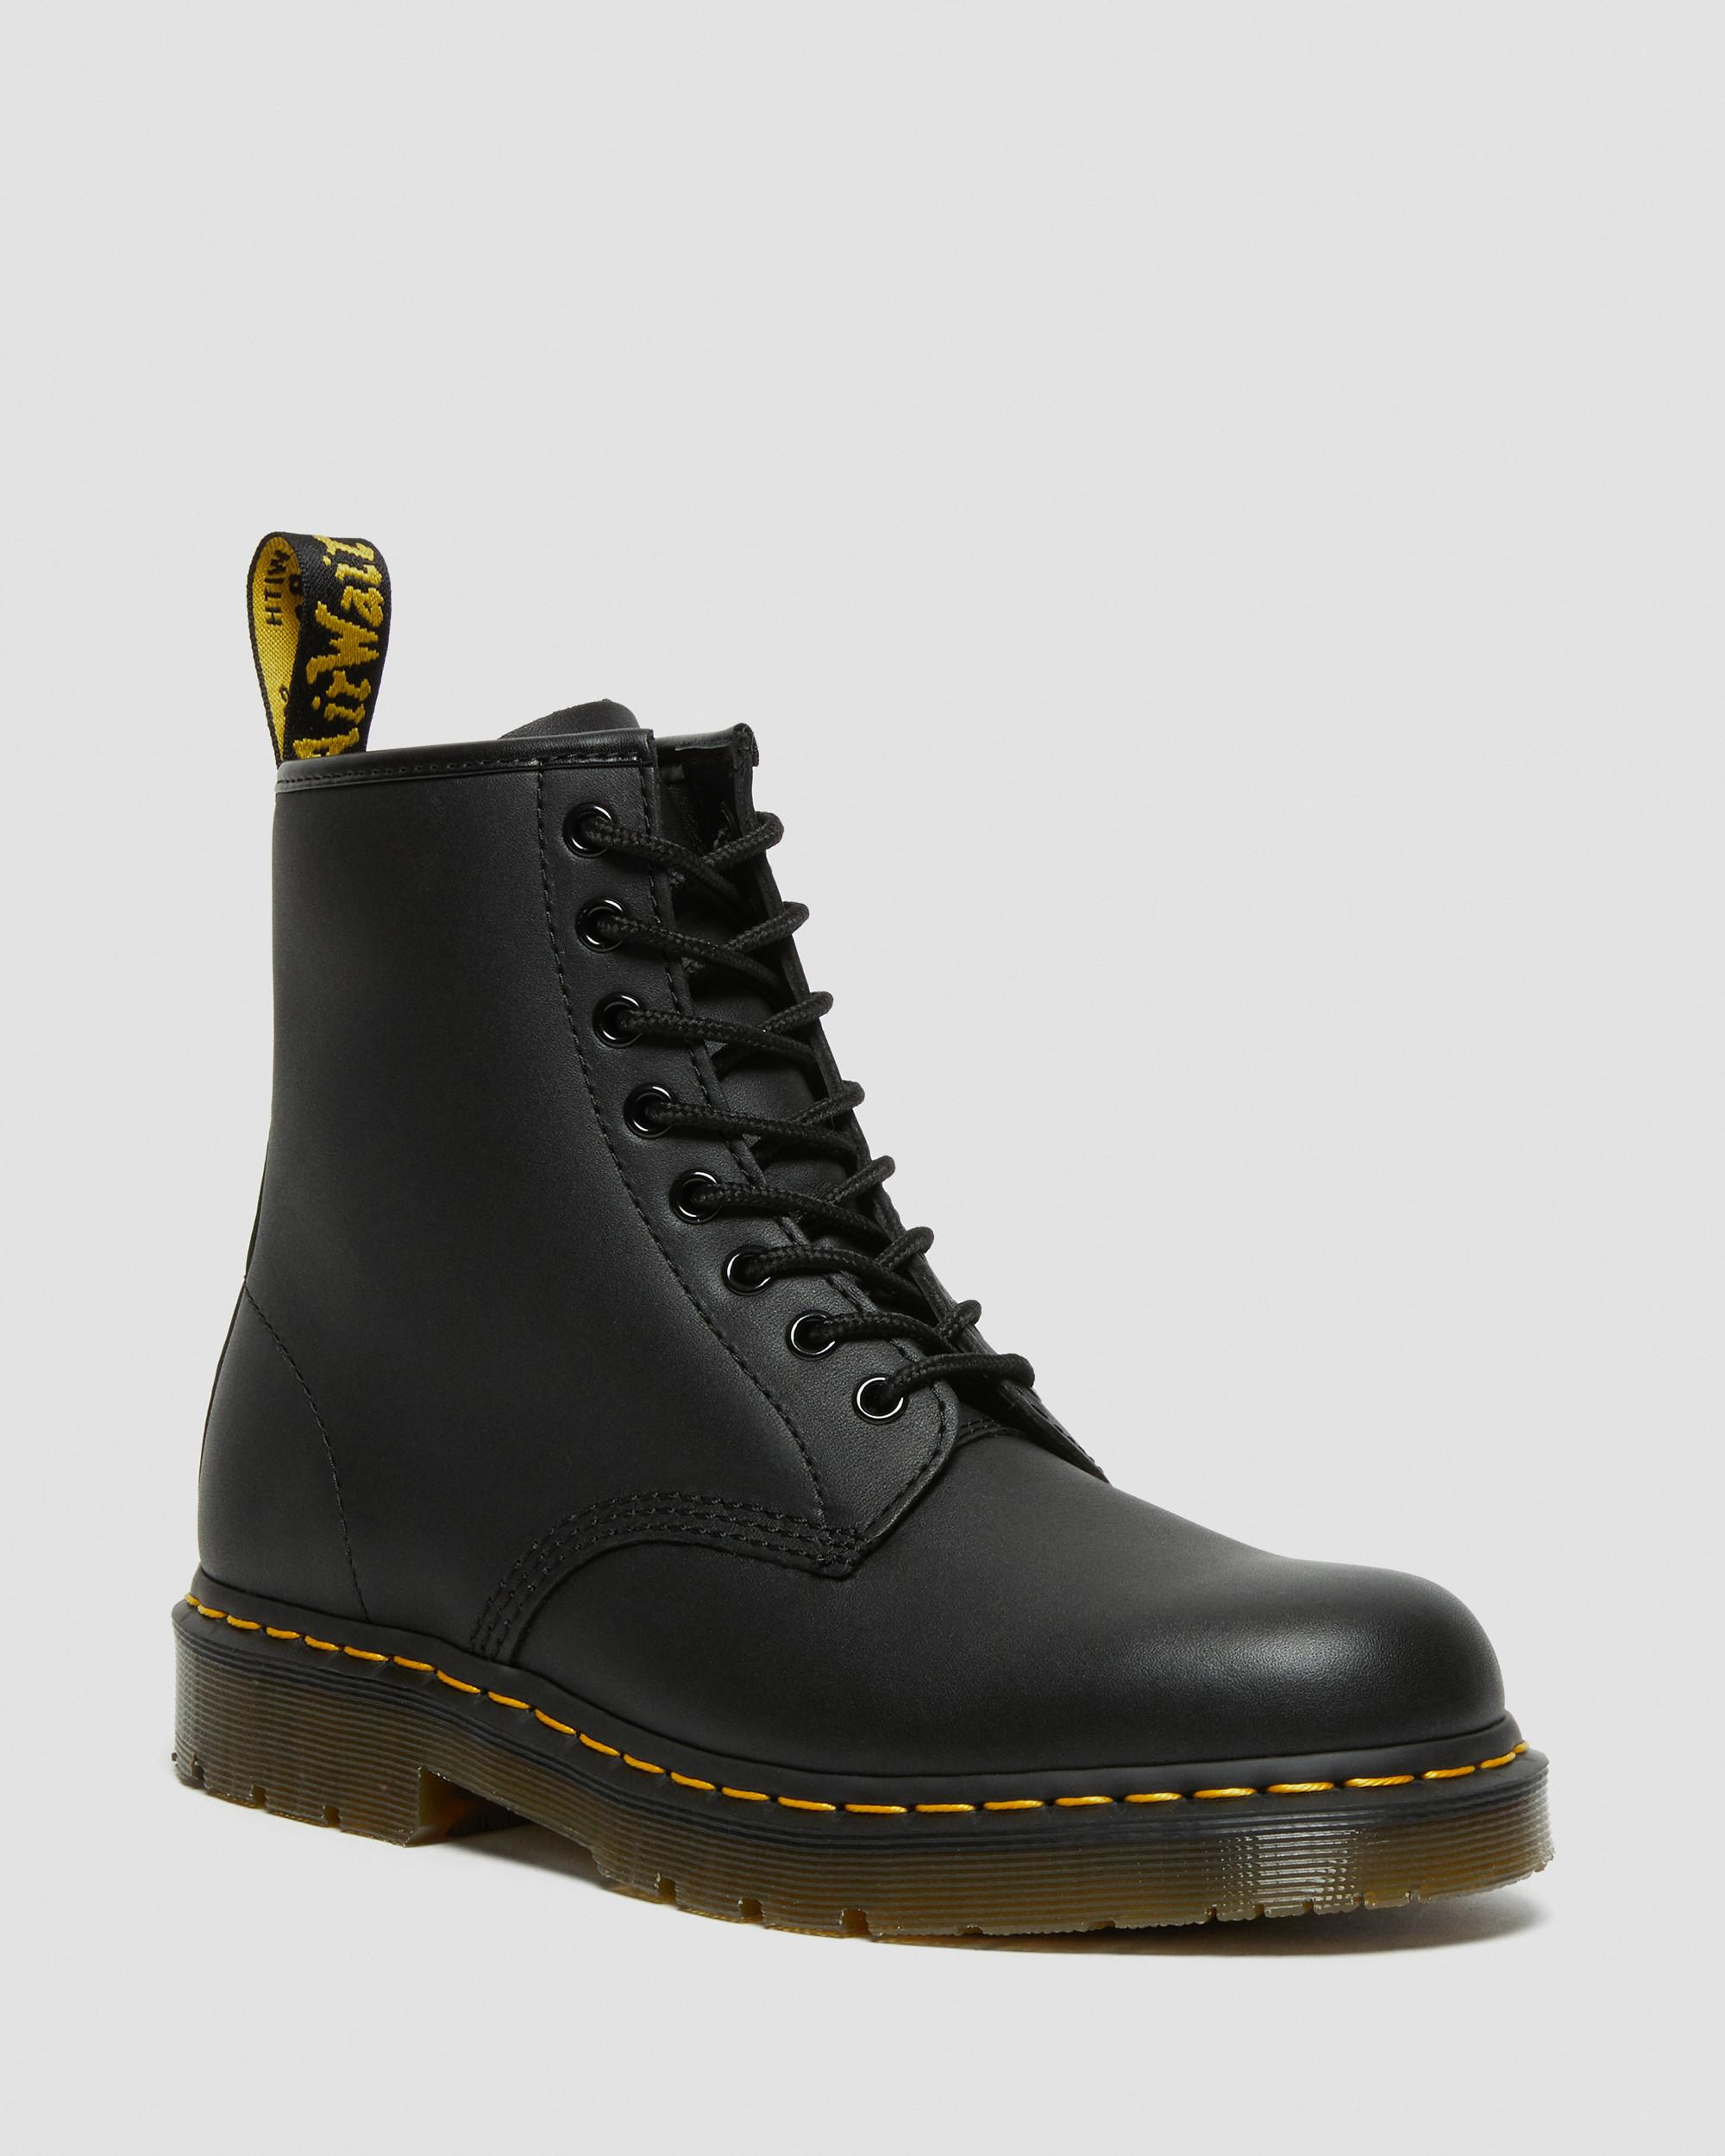 Save Money On Our Discount Items Dr Martens Women's Boat